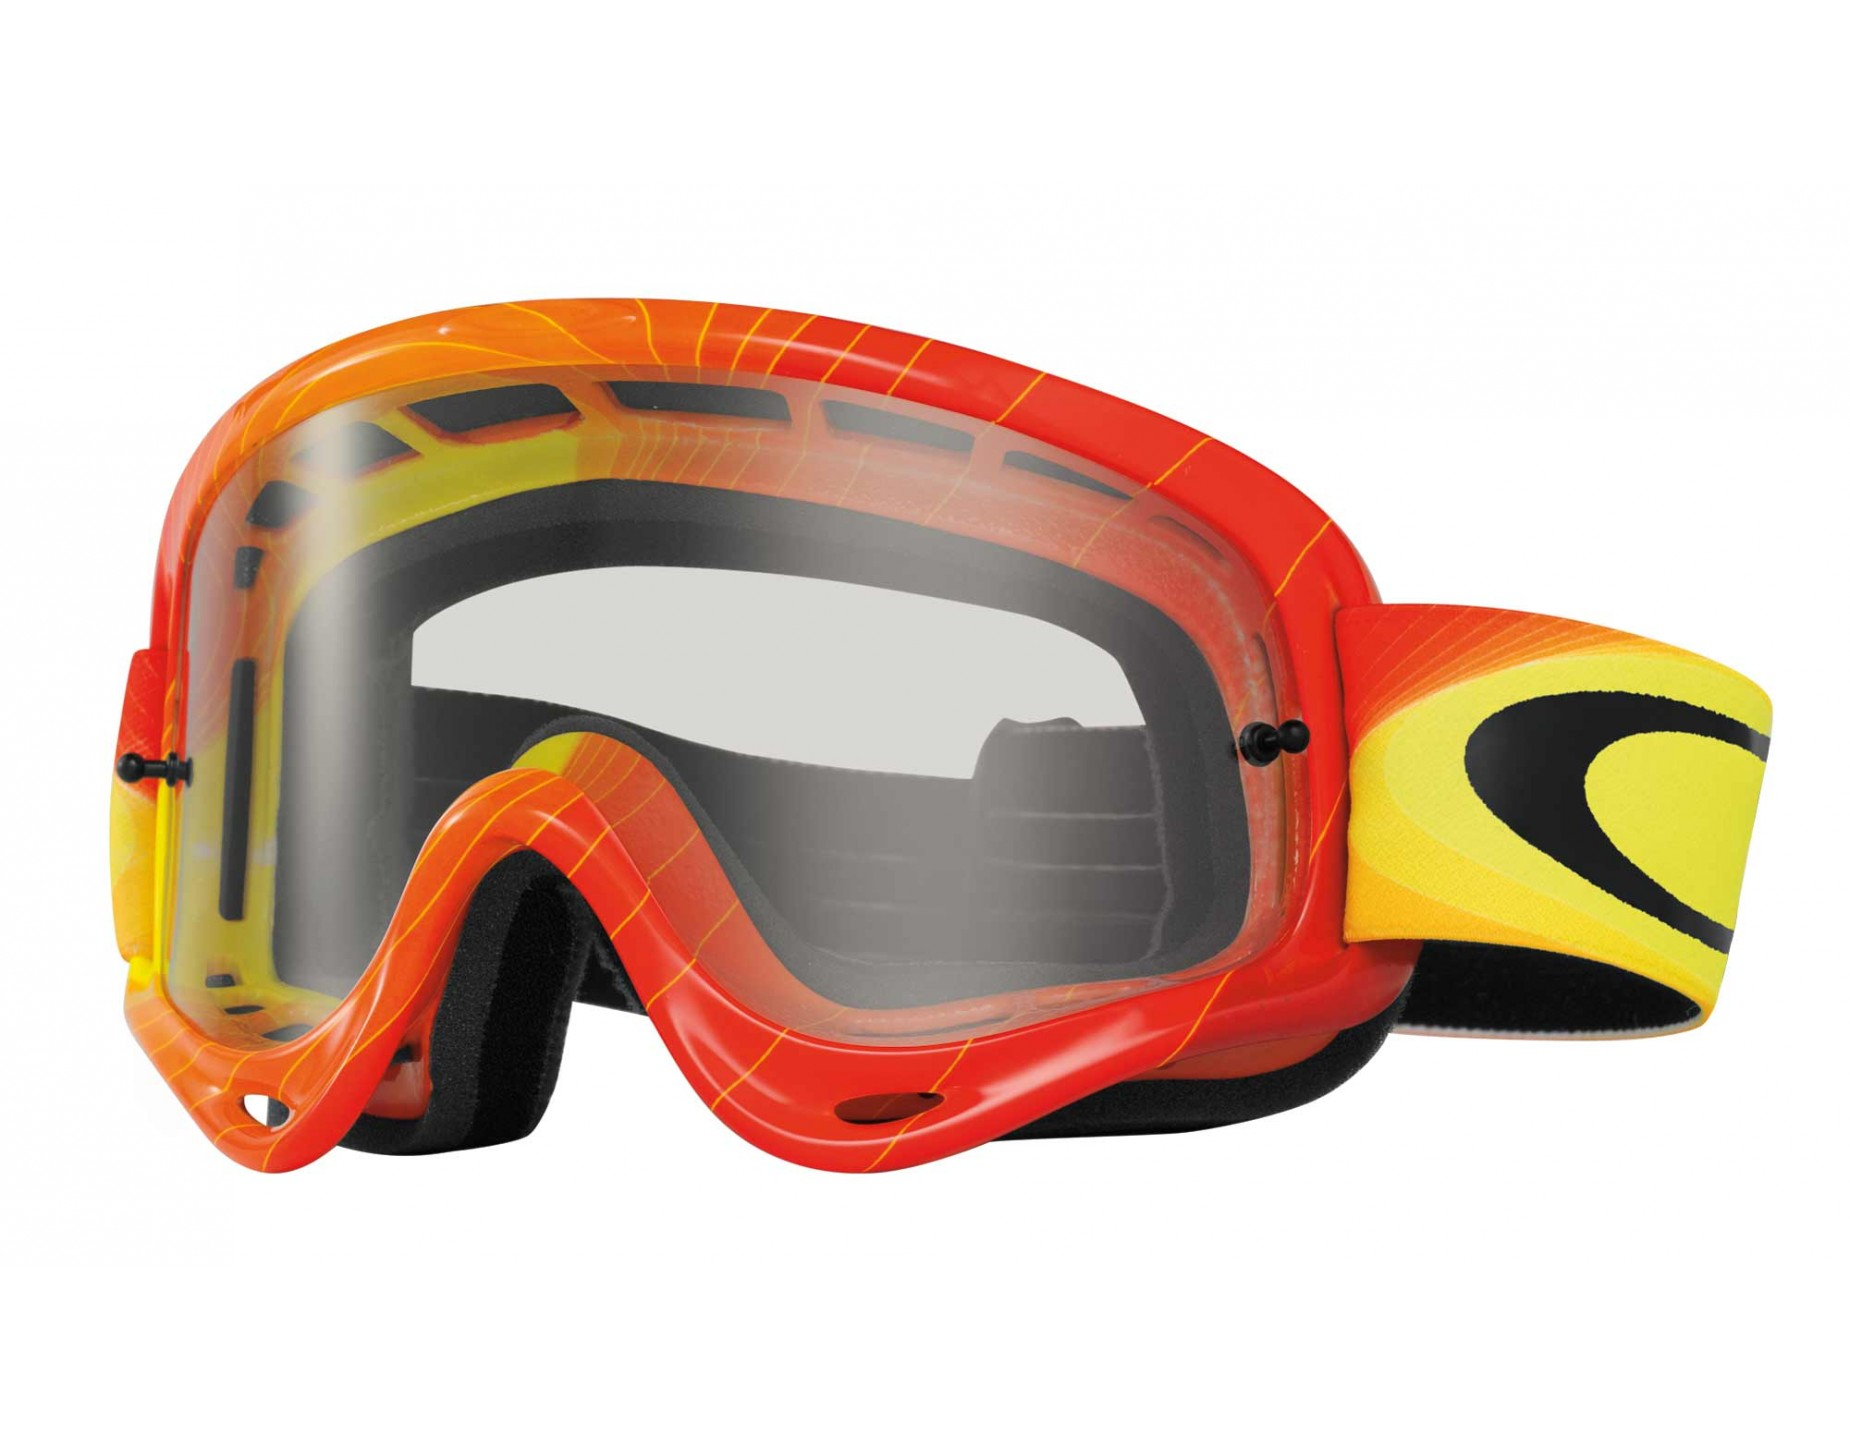 oakley o frame  OAKLEY O FRAME MX goggles \u2013 everything you need!